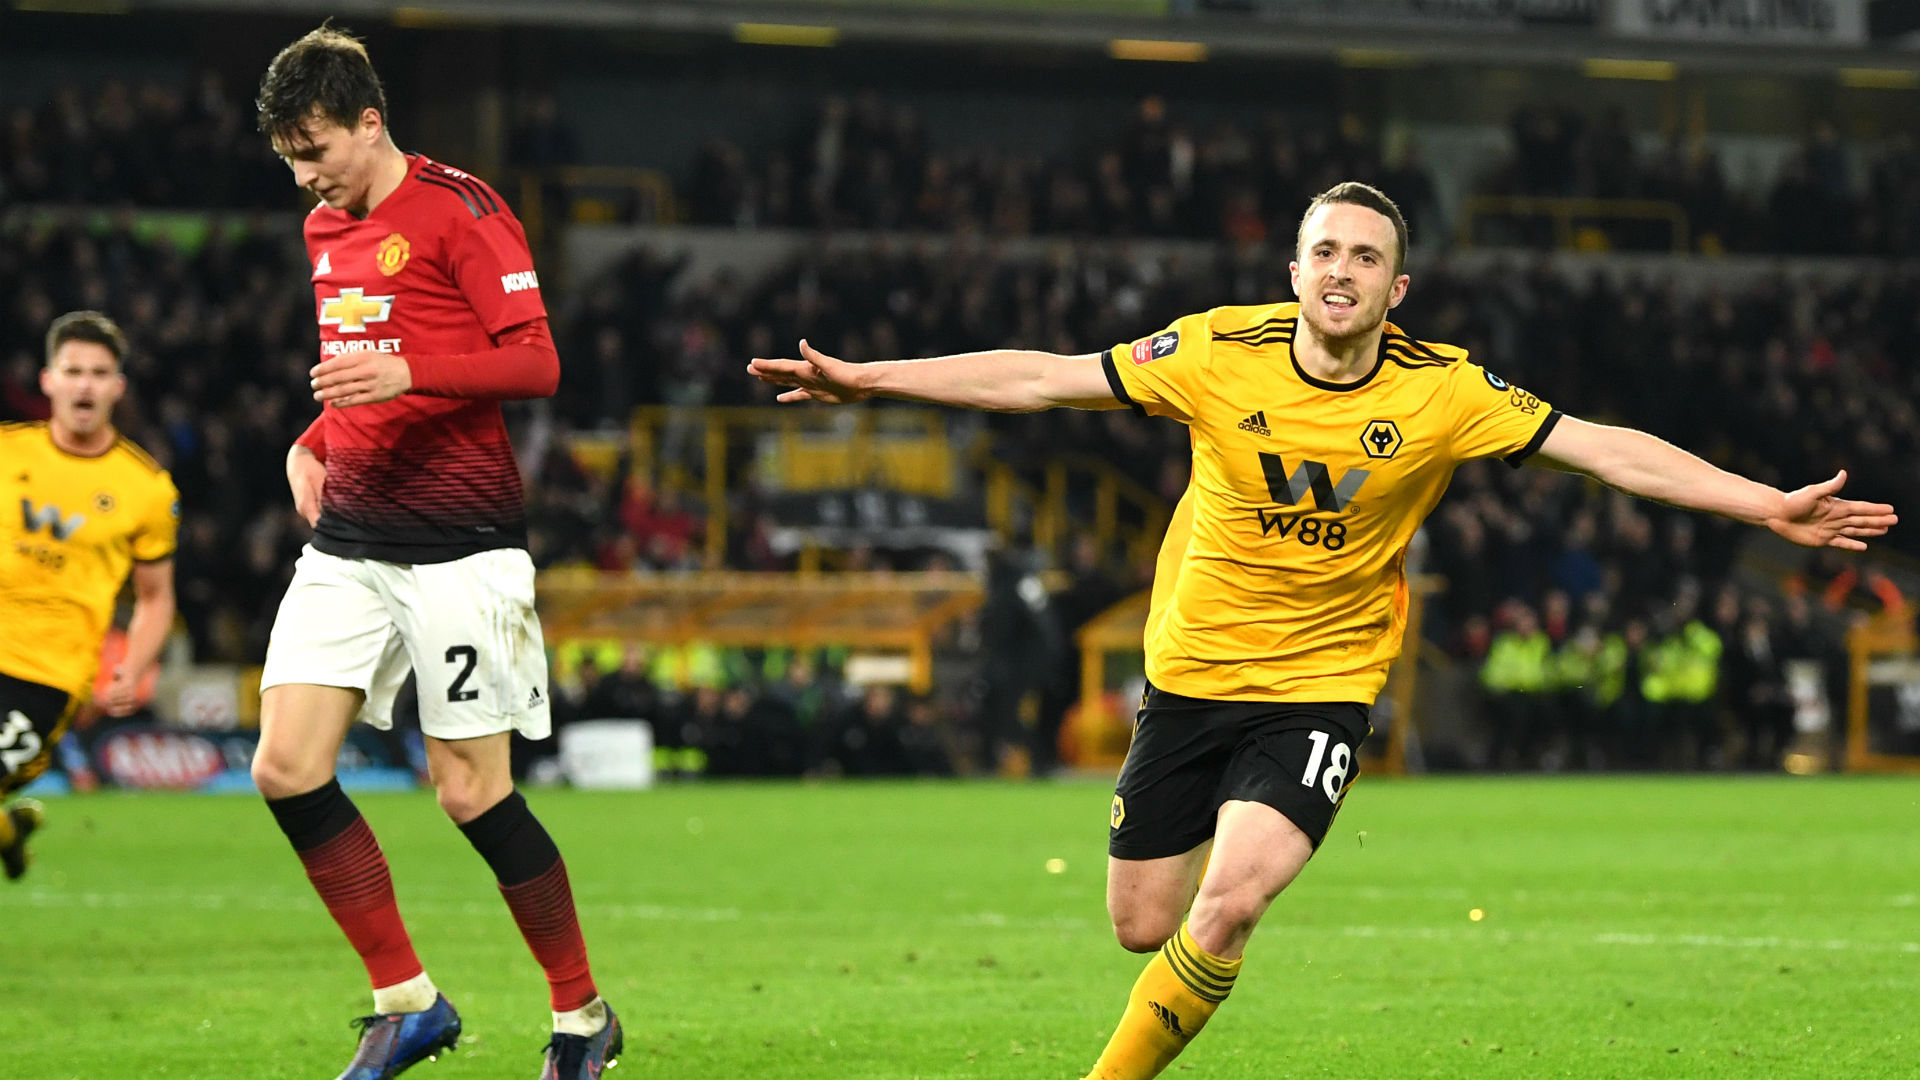 Wolves Vs Man Utd Wikipedia: FA Cup Semi-final & Final Tickets: How To Buy, Prices